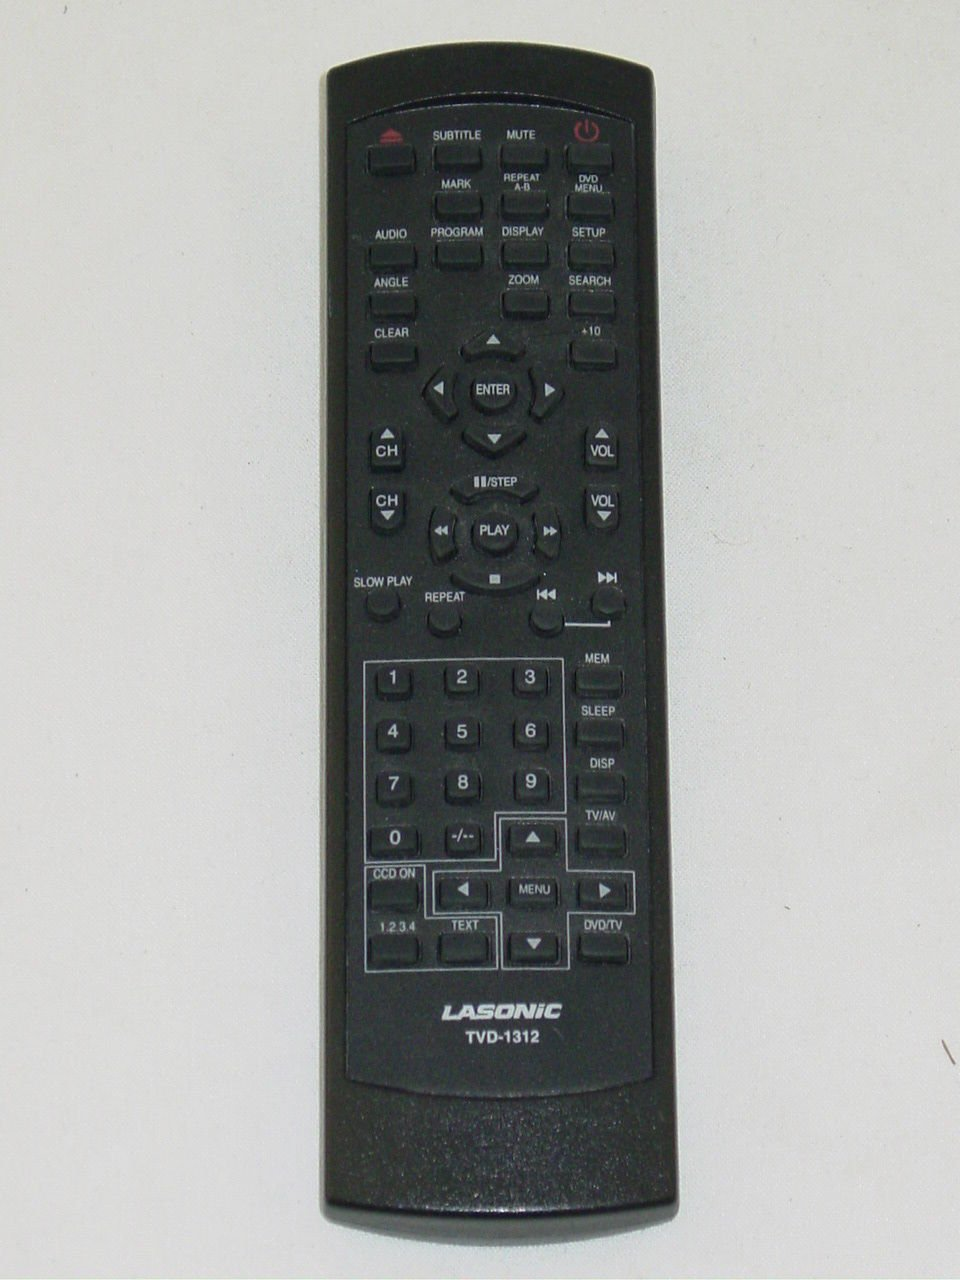 Lasonic TVD-1312 TV DVD Player Remote Control (missing battery cover)